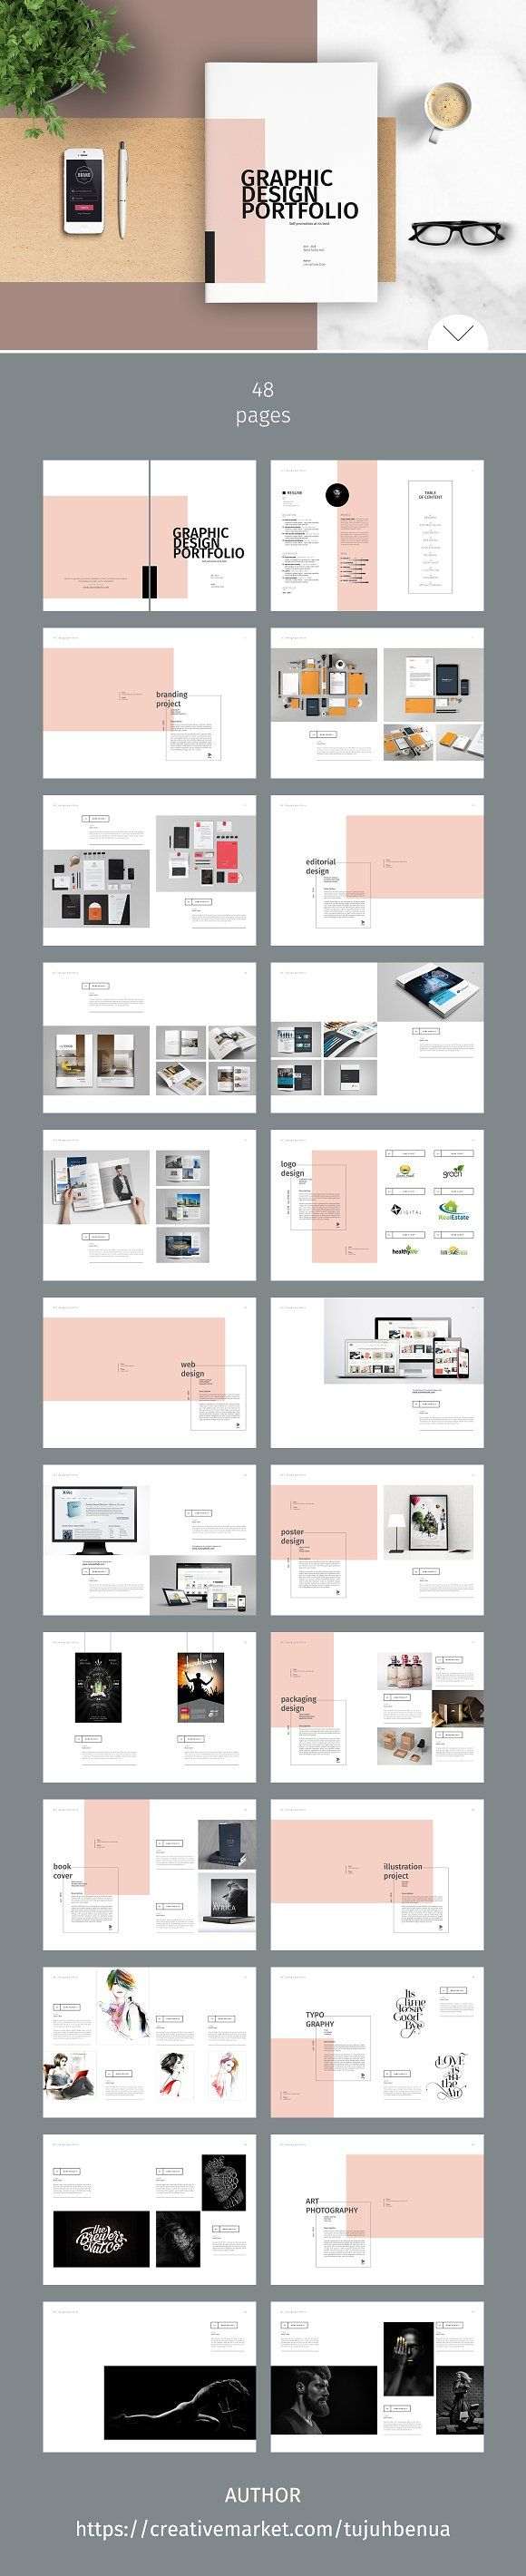 Graphic design portfolio template by tujuhbenua on creativemarket graphic design portfolio template by tujuhbenua on creativemarket pronofoot35fo Image collections